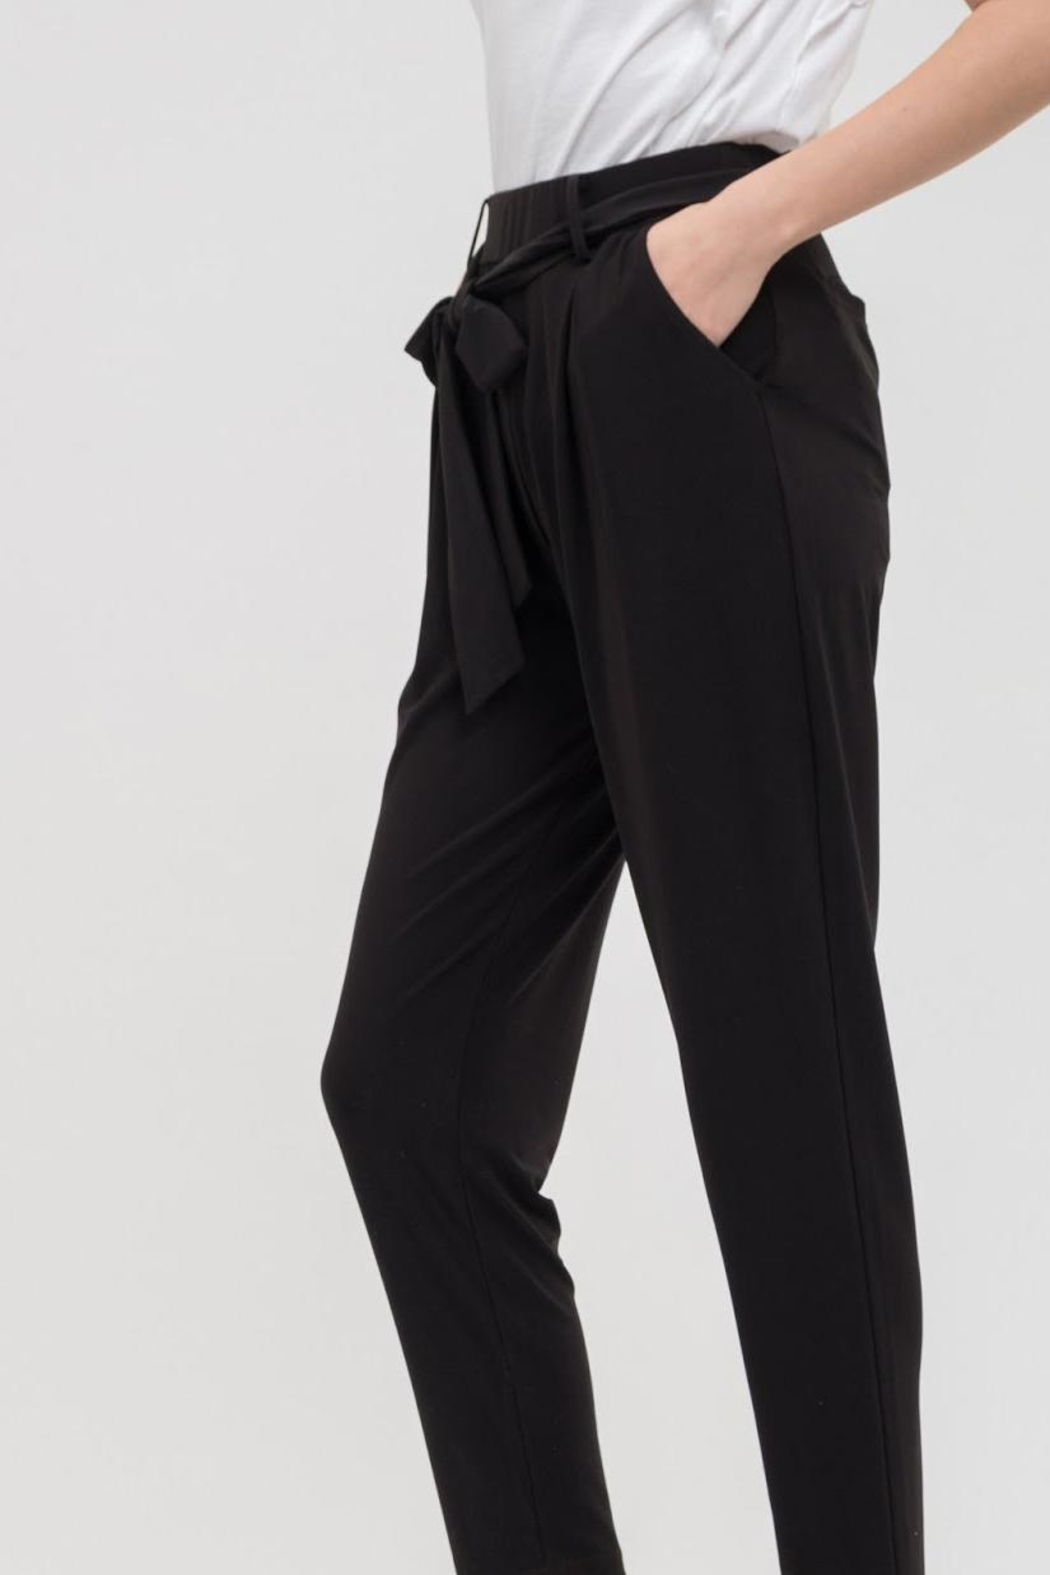 Blu Pepper Silky Woven Pant - Side Cropped Image